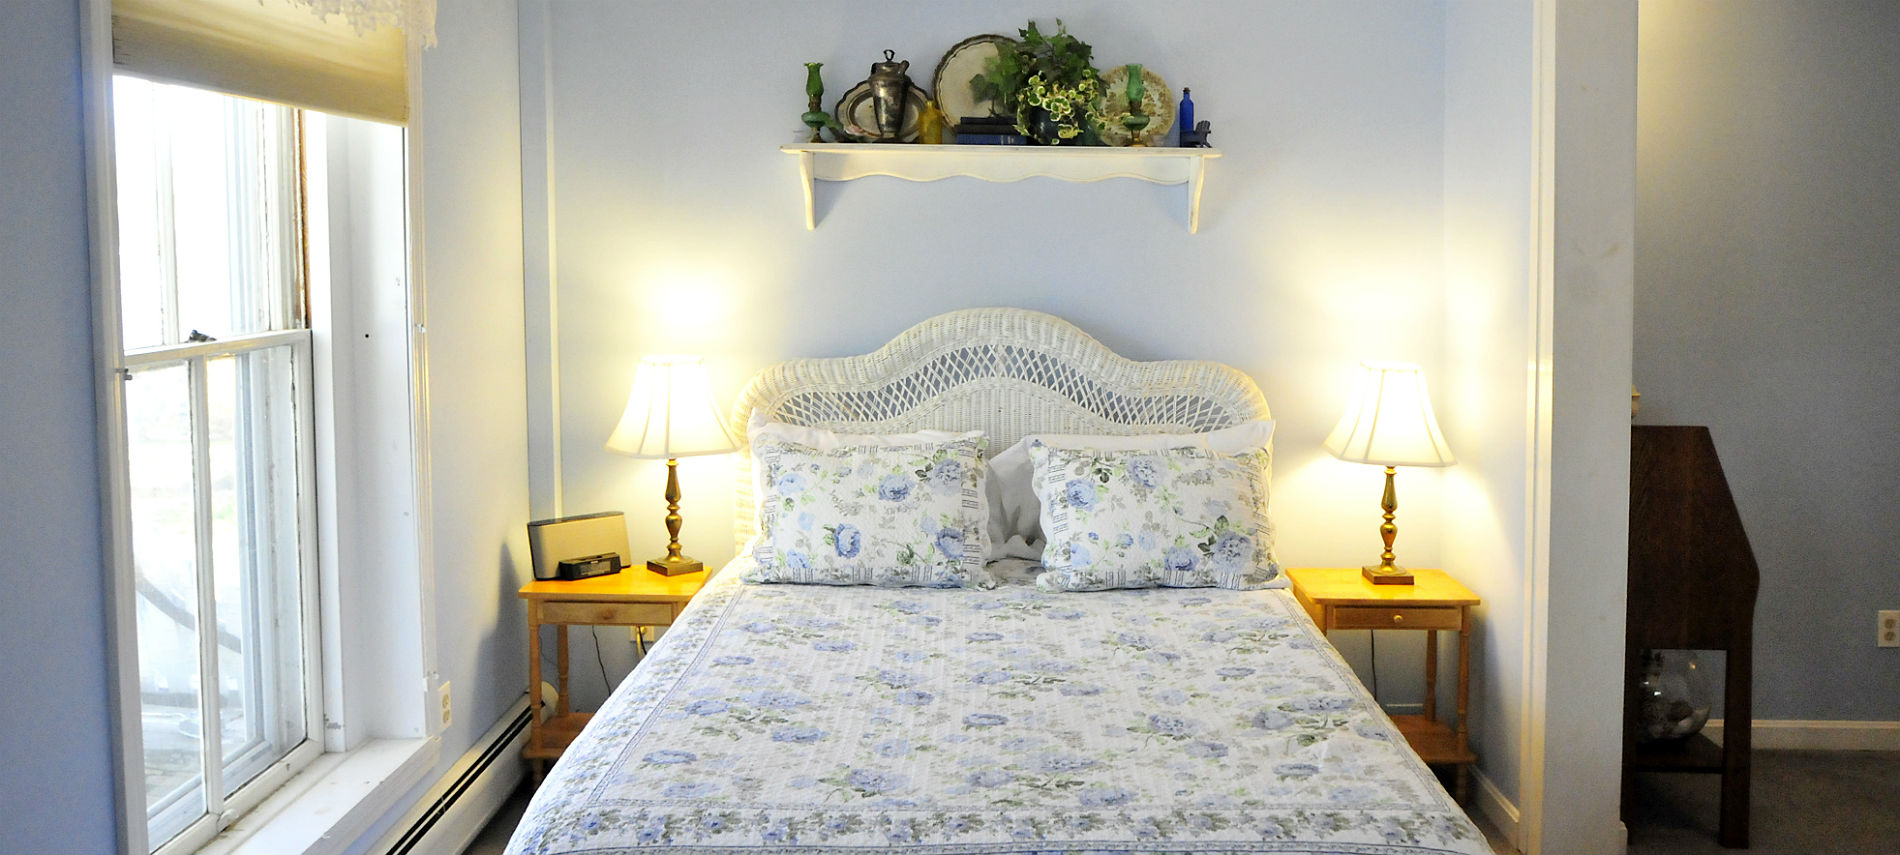 Charming wicker bed with a flowered bed cover and shams with a nightstand and lamp.